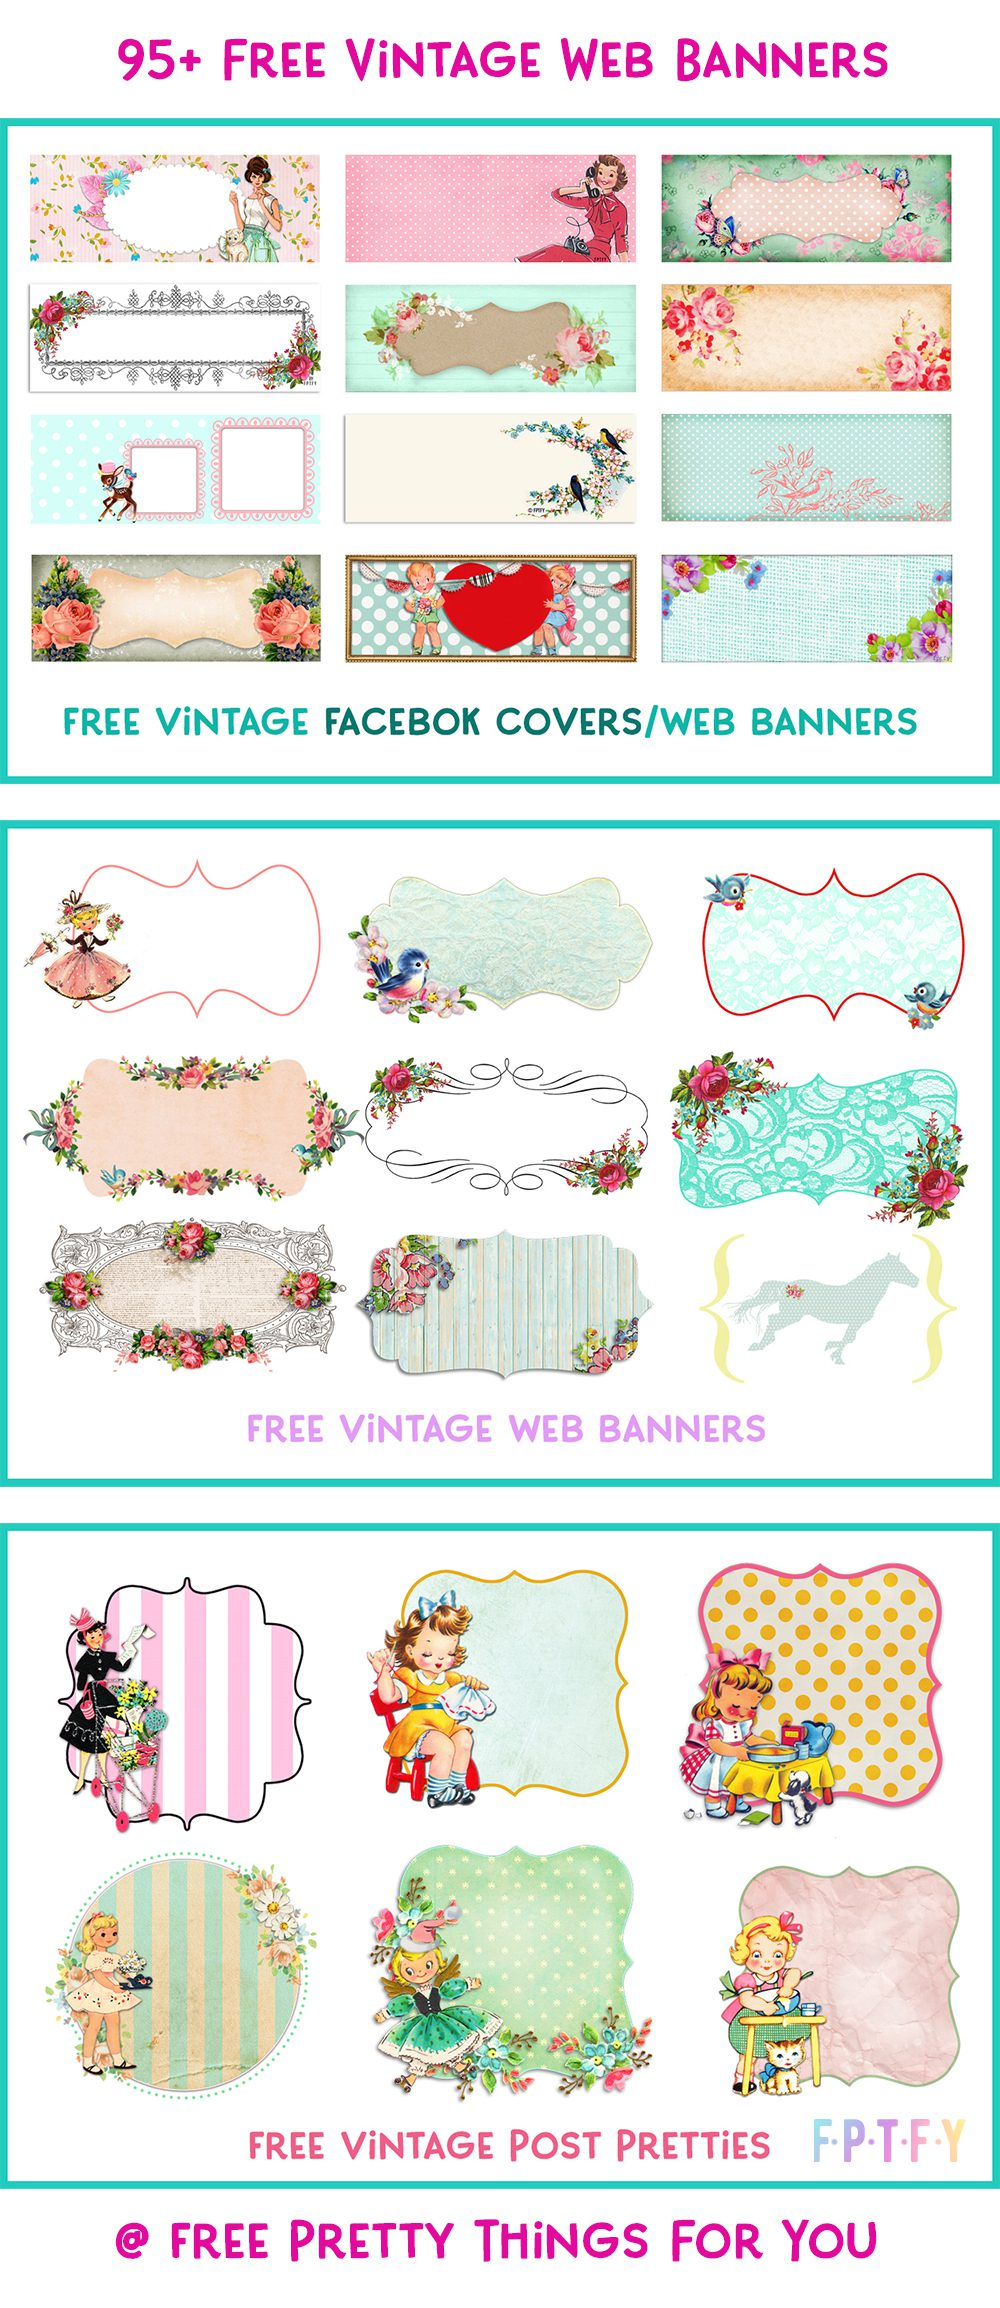 95+ Facebook covers vintage web banners